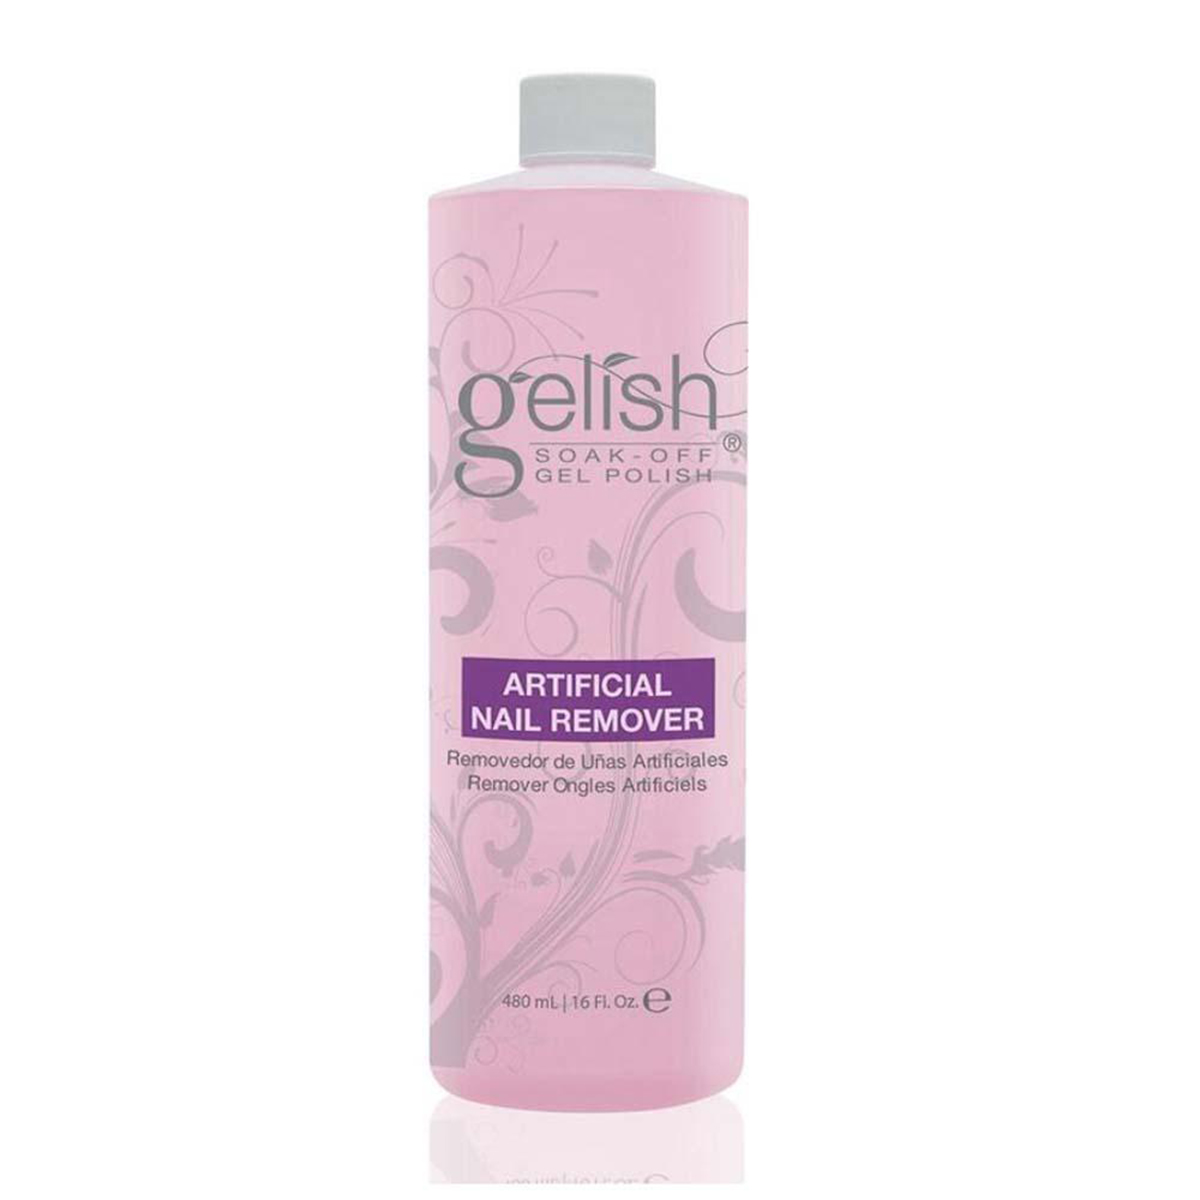 Purple bottle of Gelish Artificial Nail Remover